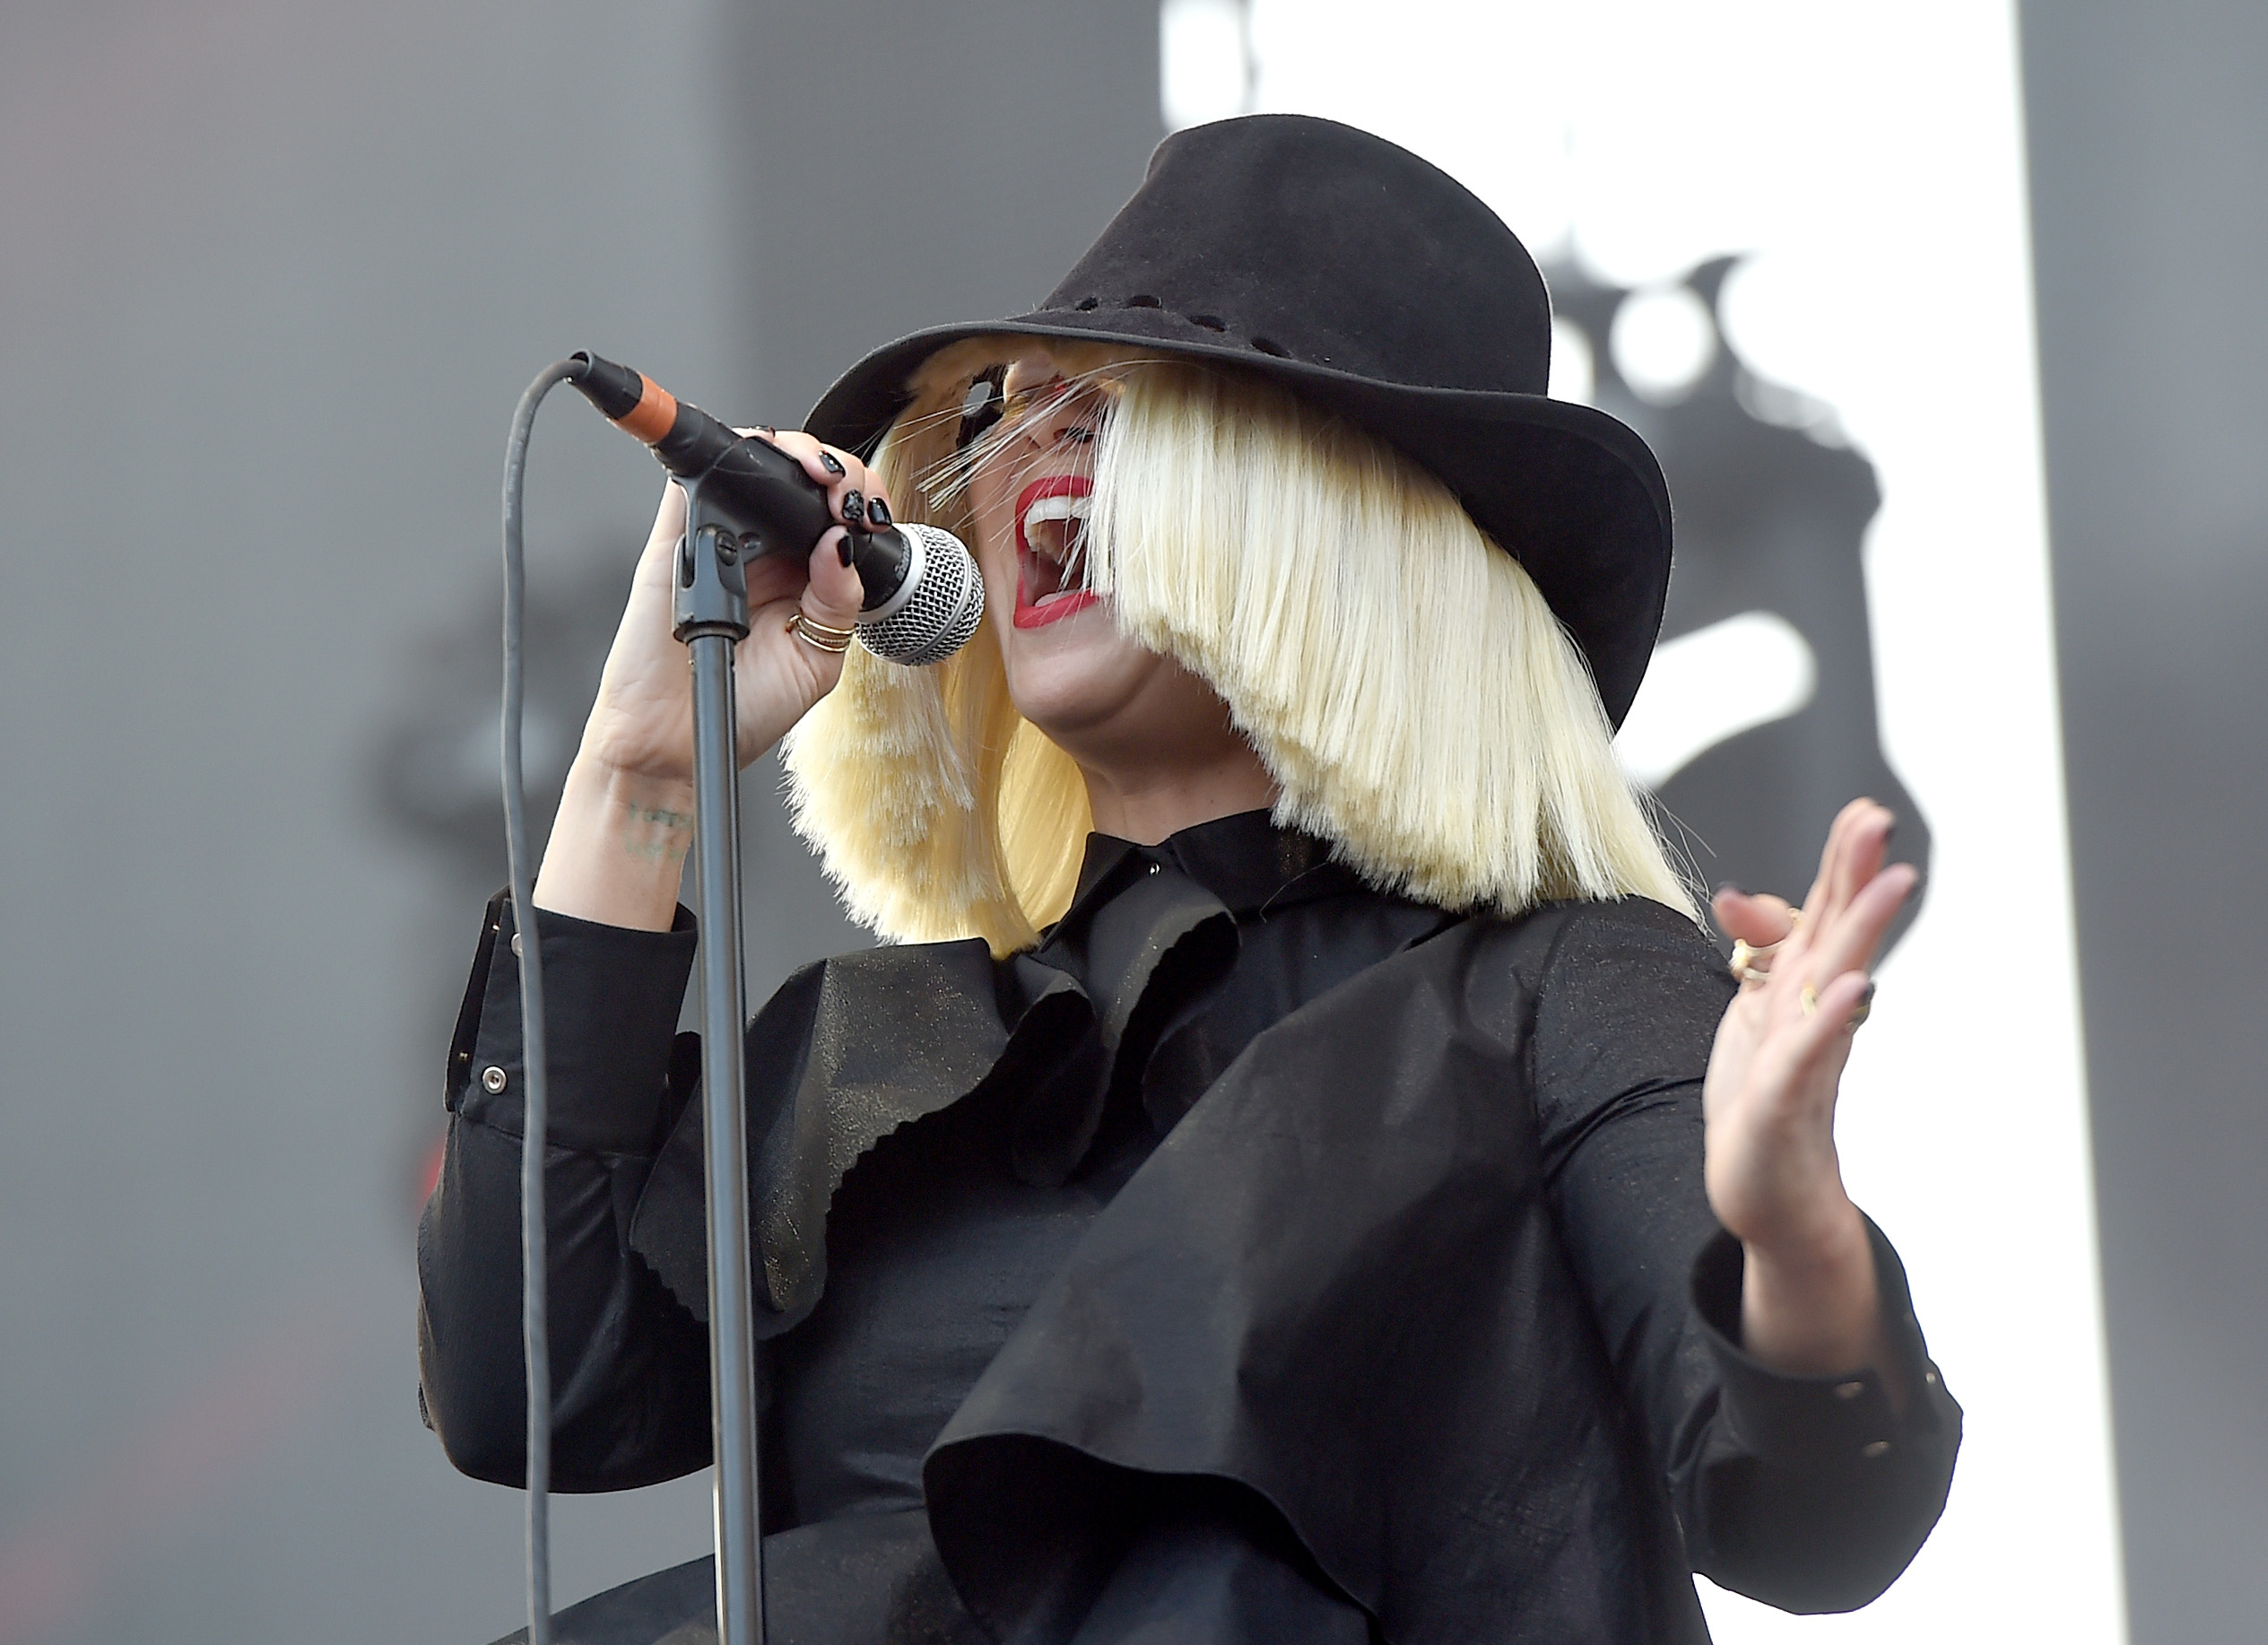 Sia S Alive Lyrics Tell An Inspiring Story About Overcoming Life S Obstacles Listen